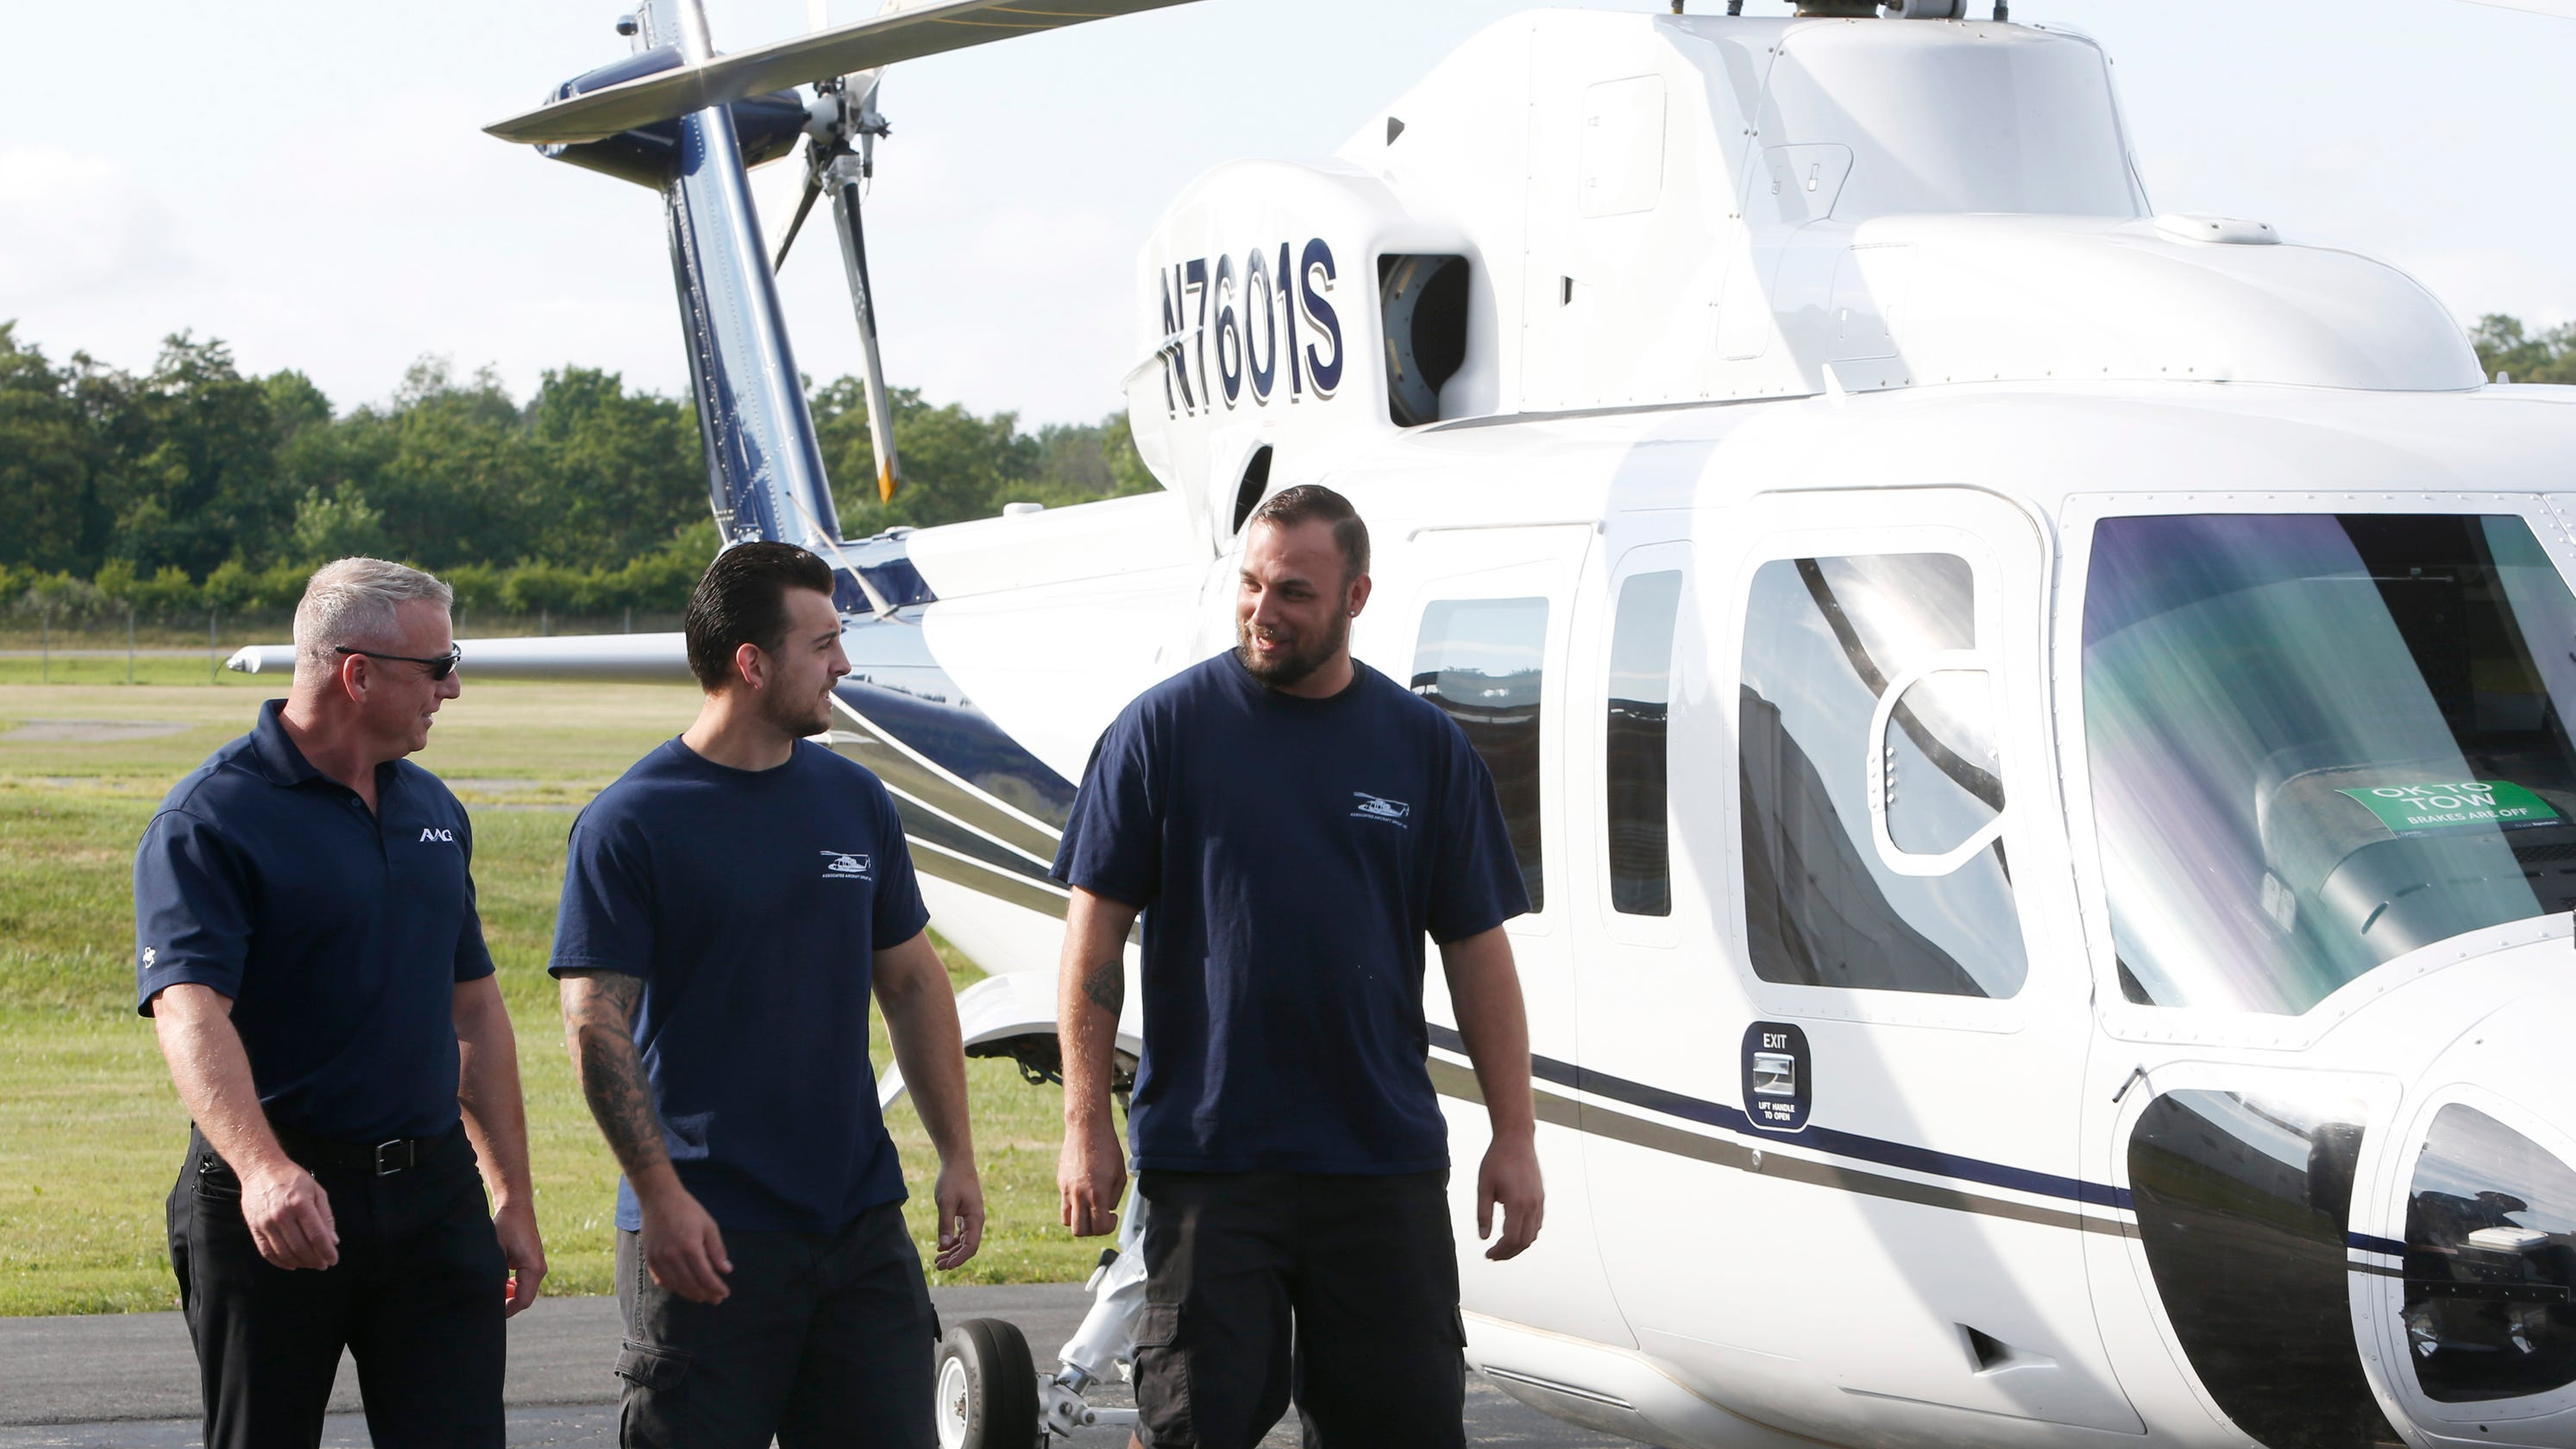 Dutchess plane crash: How helicopter crew performed unlikely